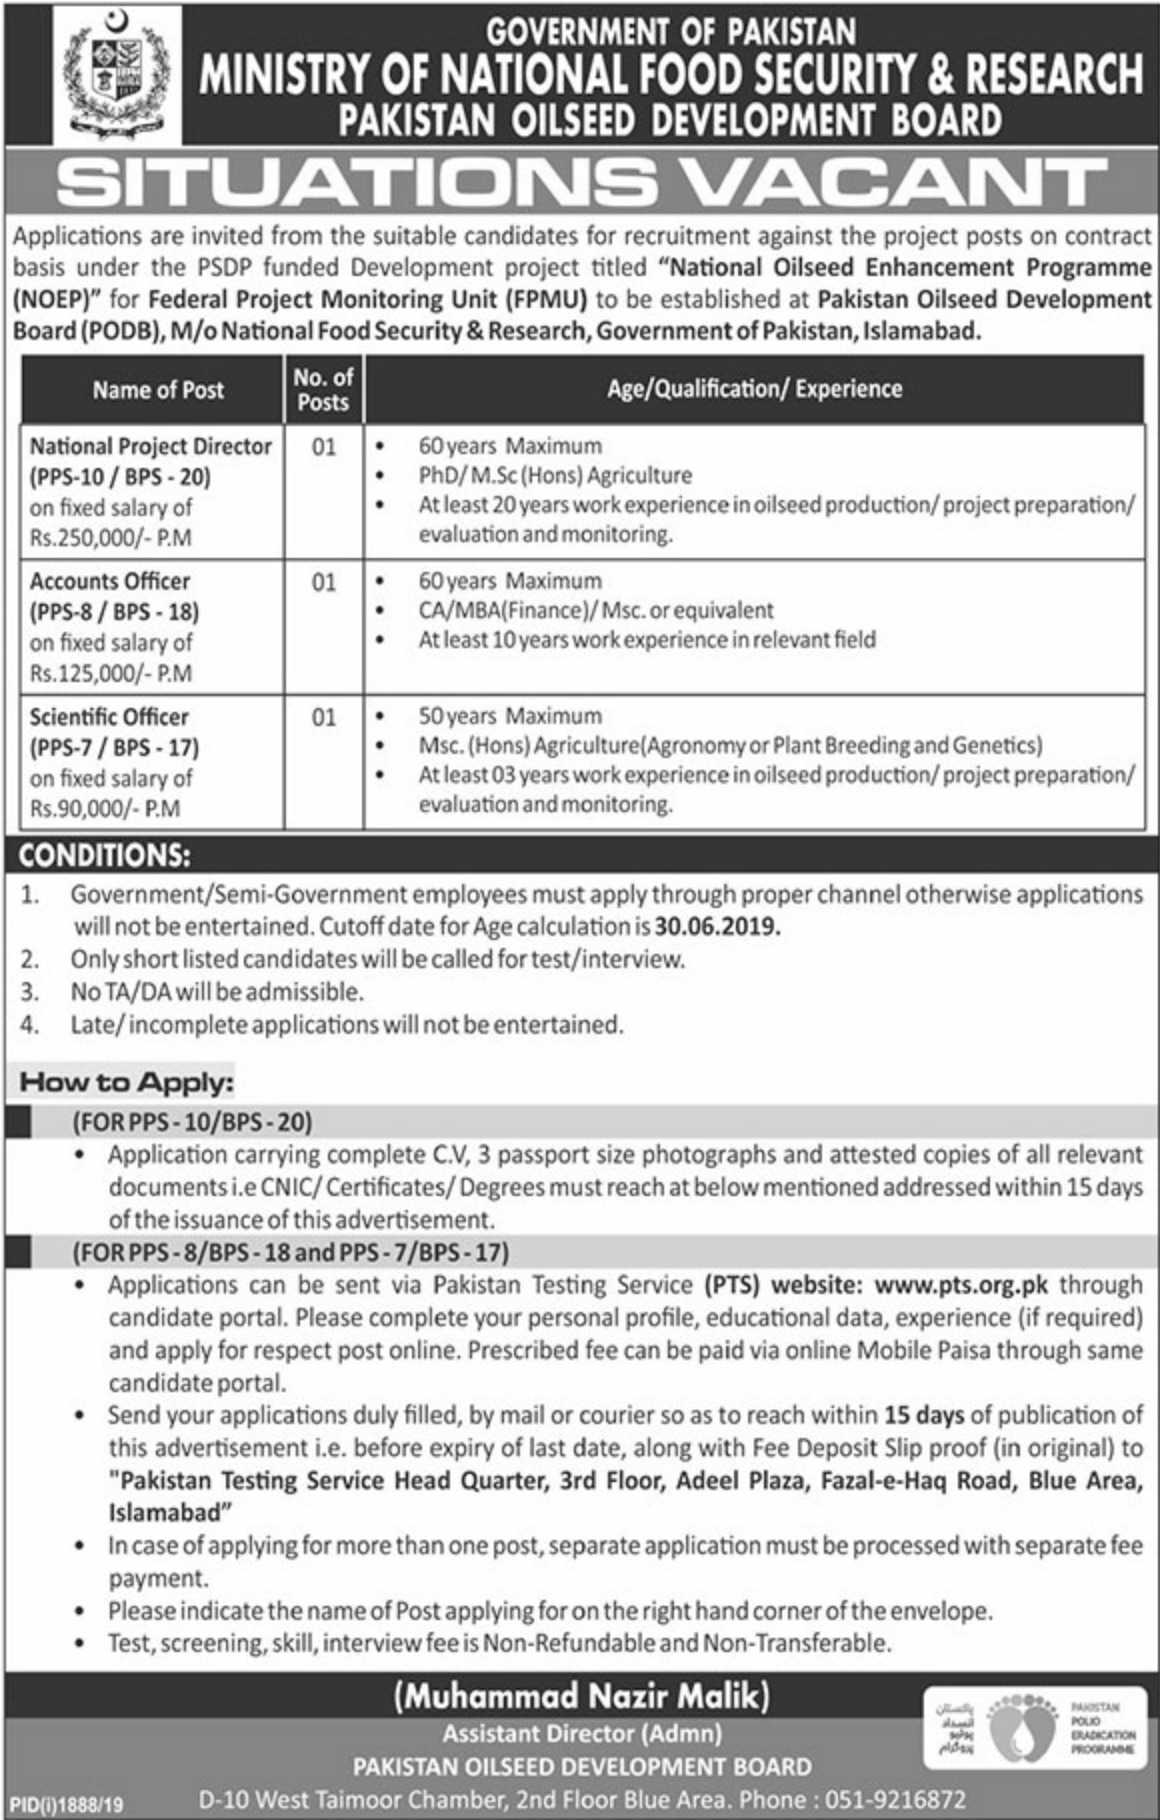 Ministry of National Food Security & Research Jobs 2019 PTS Application Form